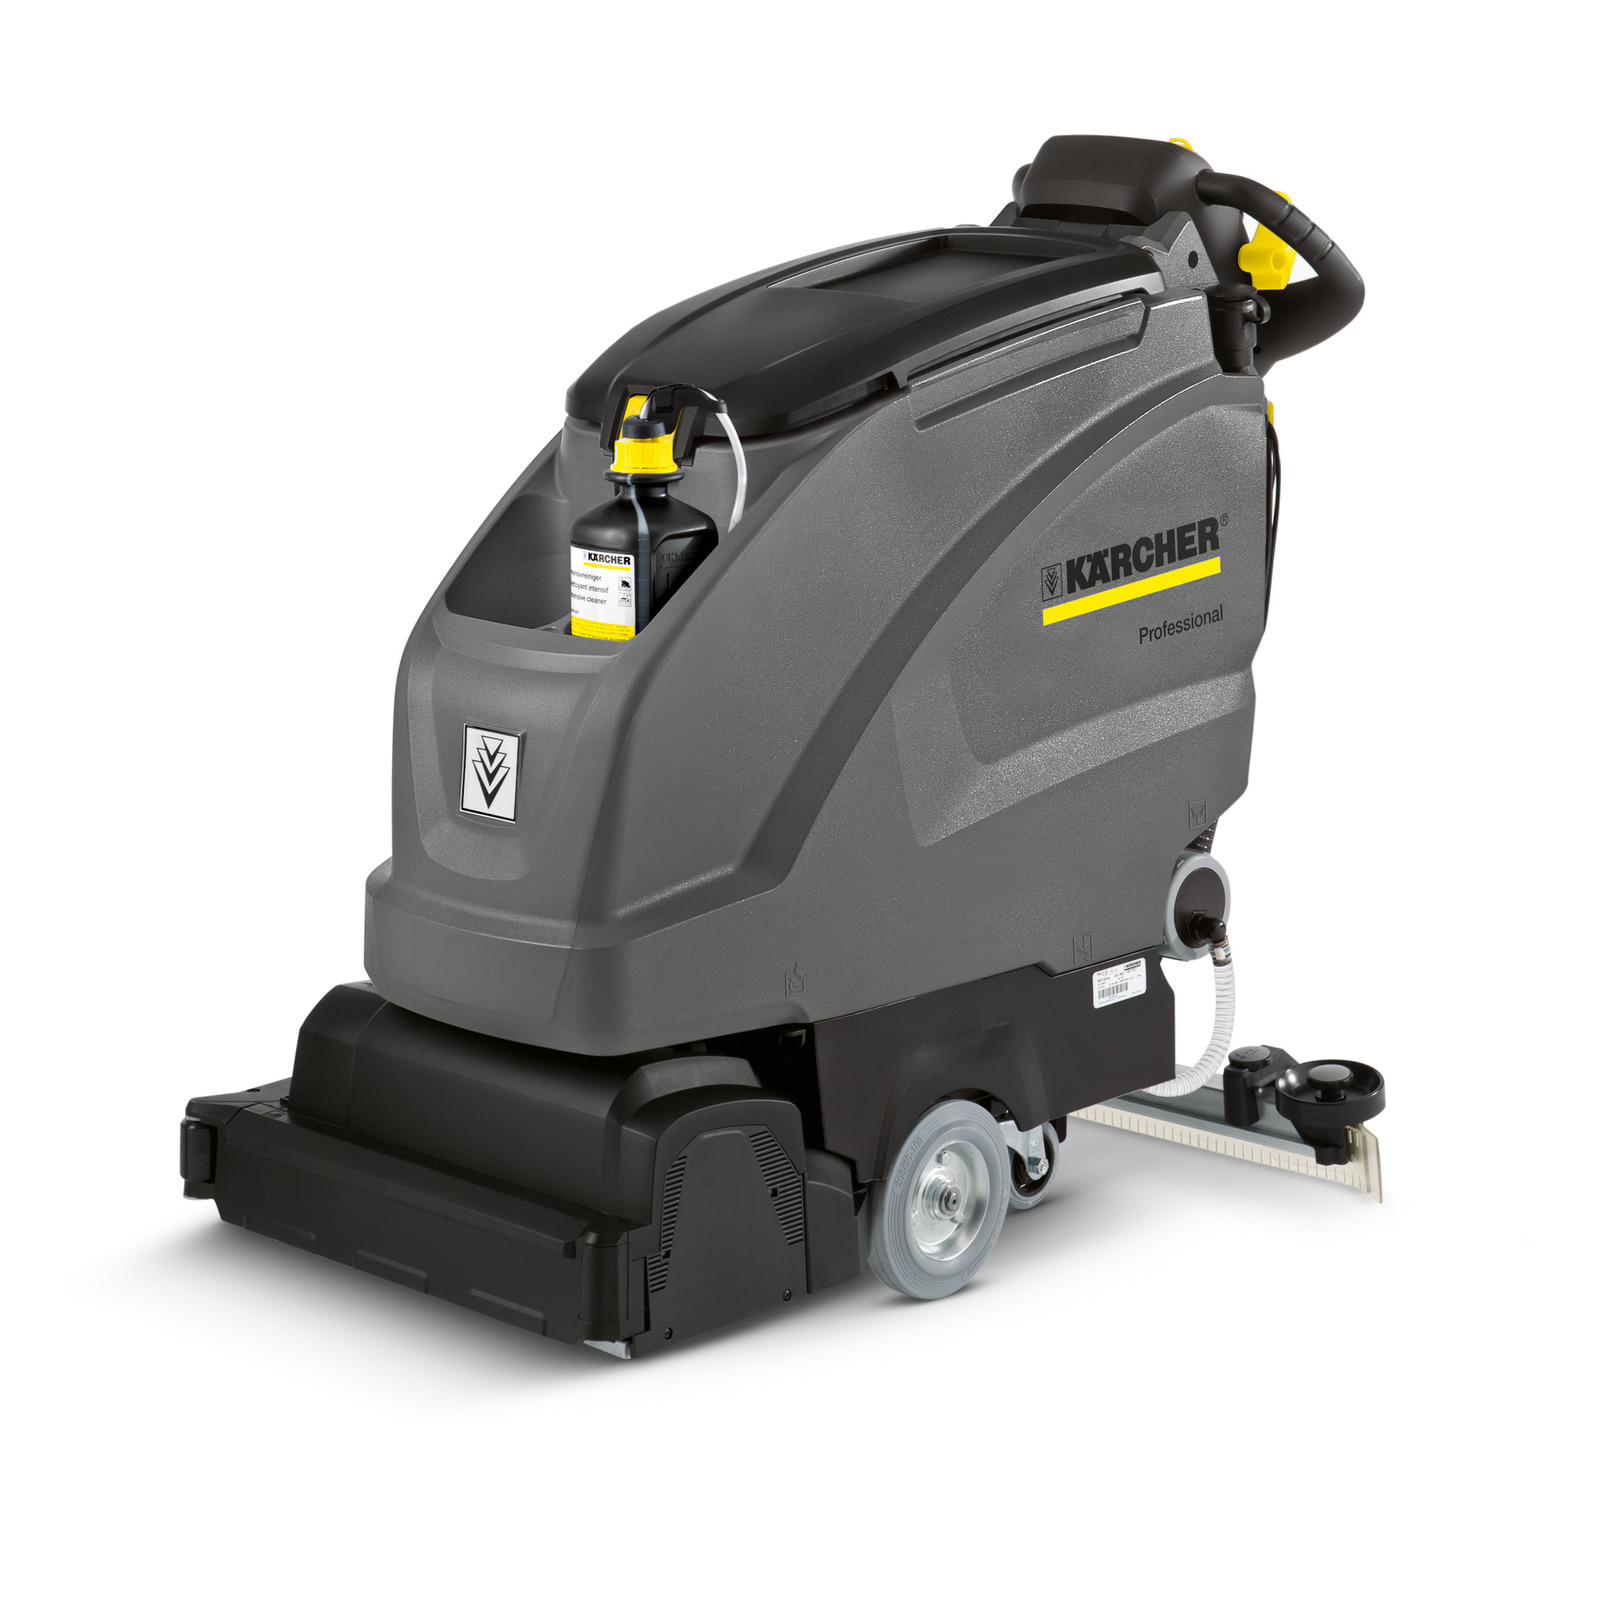 Karcher B 40 C Bp Auto Scrubber 24v 105 Ah Batteries Scrub Deck Sold Separately 9.841-120.0 Freight Included